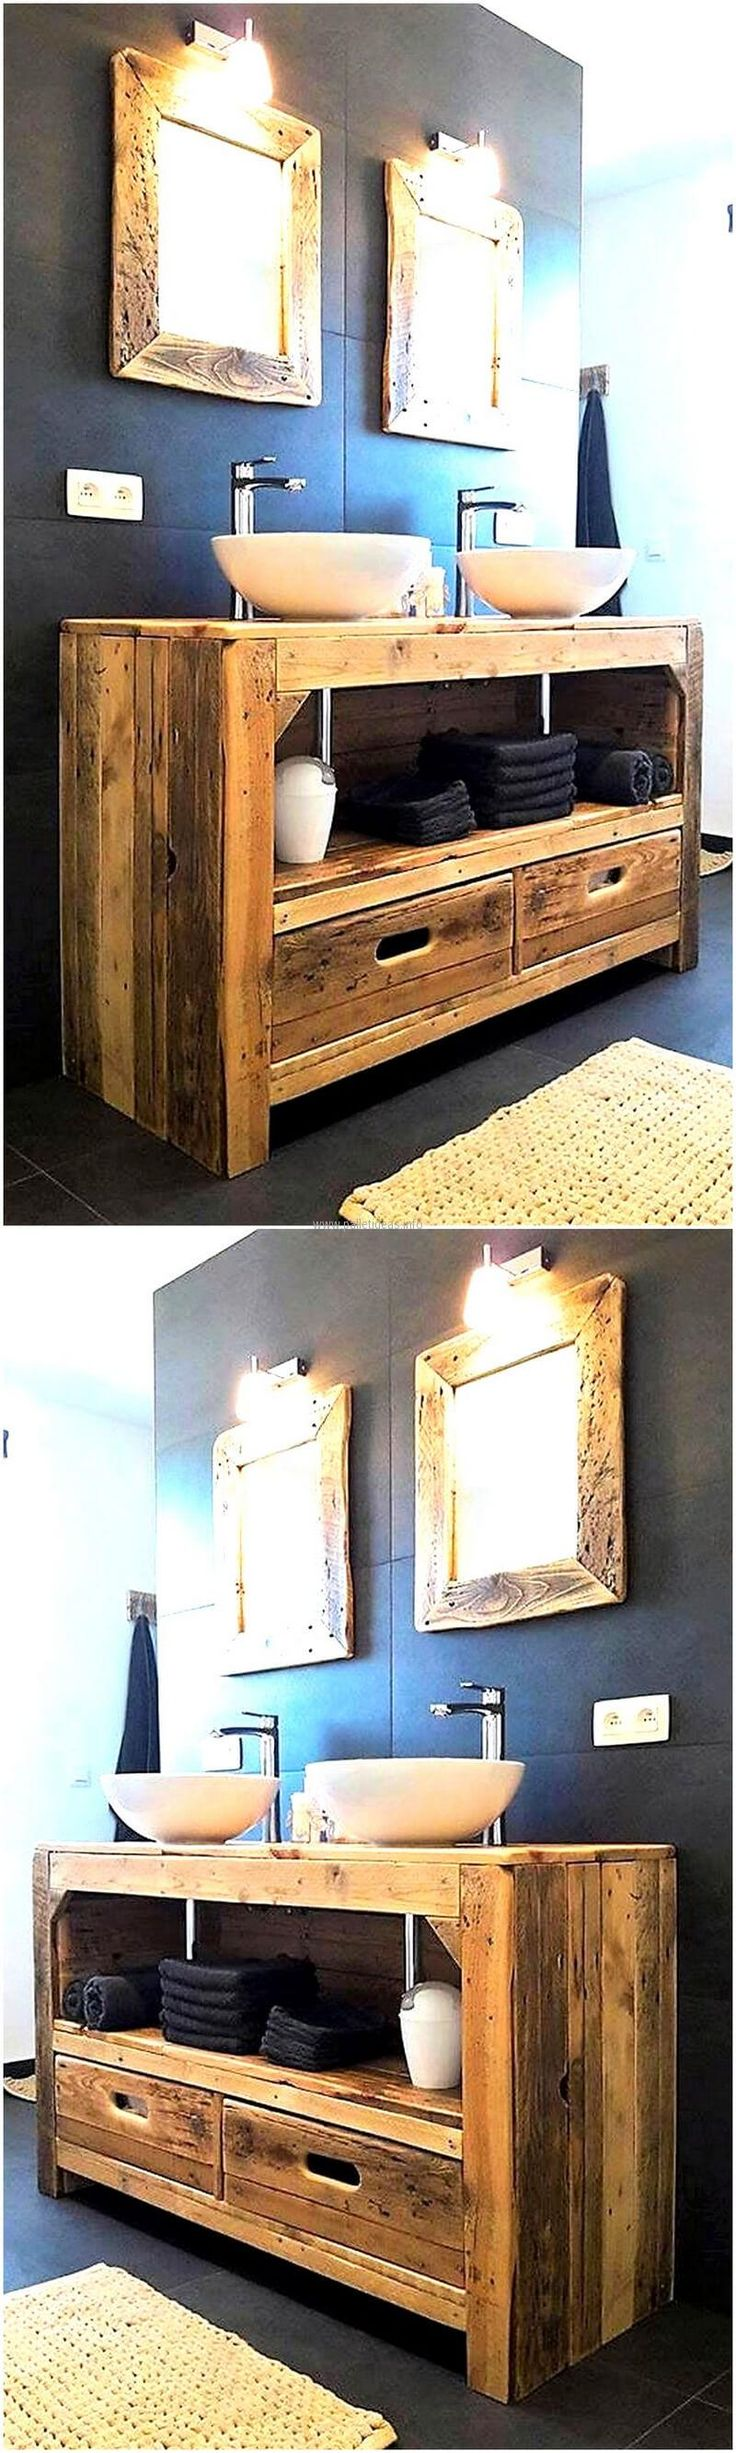 Pallets never fail to impress others because they can be reshaped into almost anything for any area; here you can see the reclaimed wood pallet rustic sink. It is making the bathroom look amazing and there are drawers as well to store the items of bathroom in an organized way.